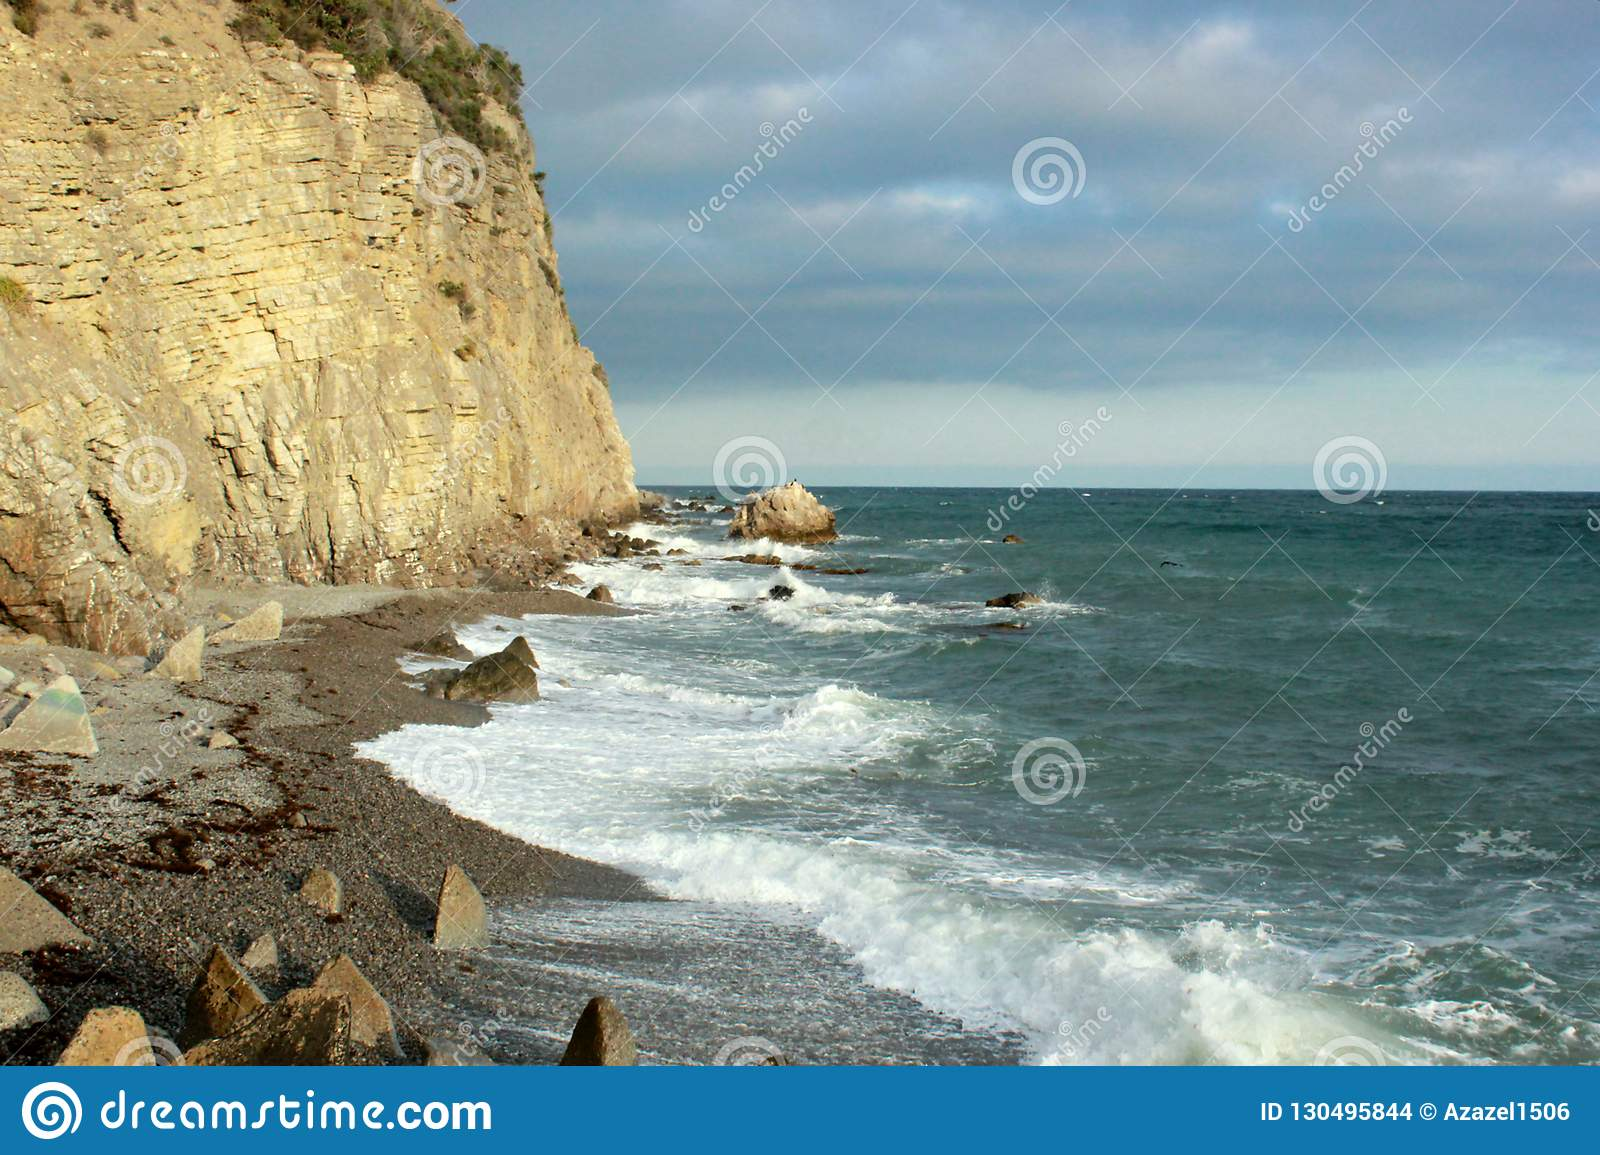 Beautiful seascape, rocks and sea, blue, turquoise water and sky